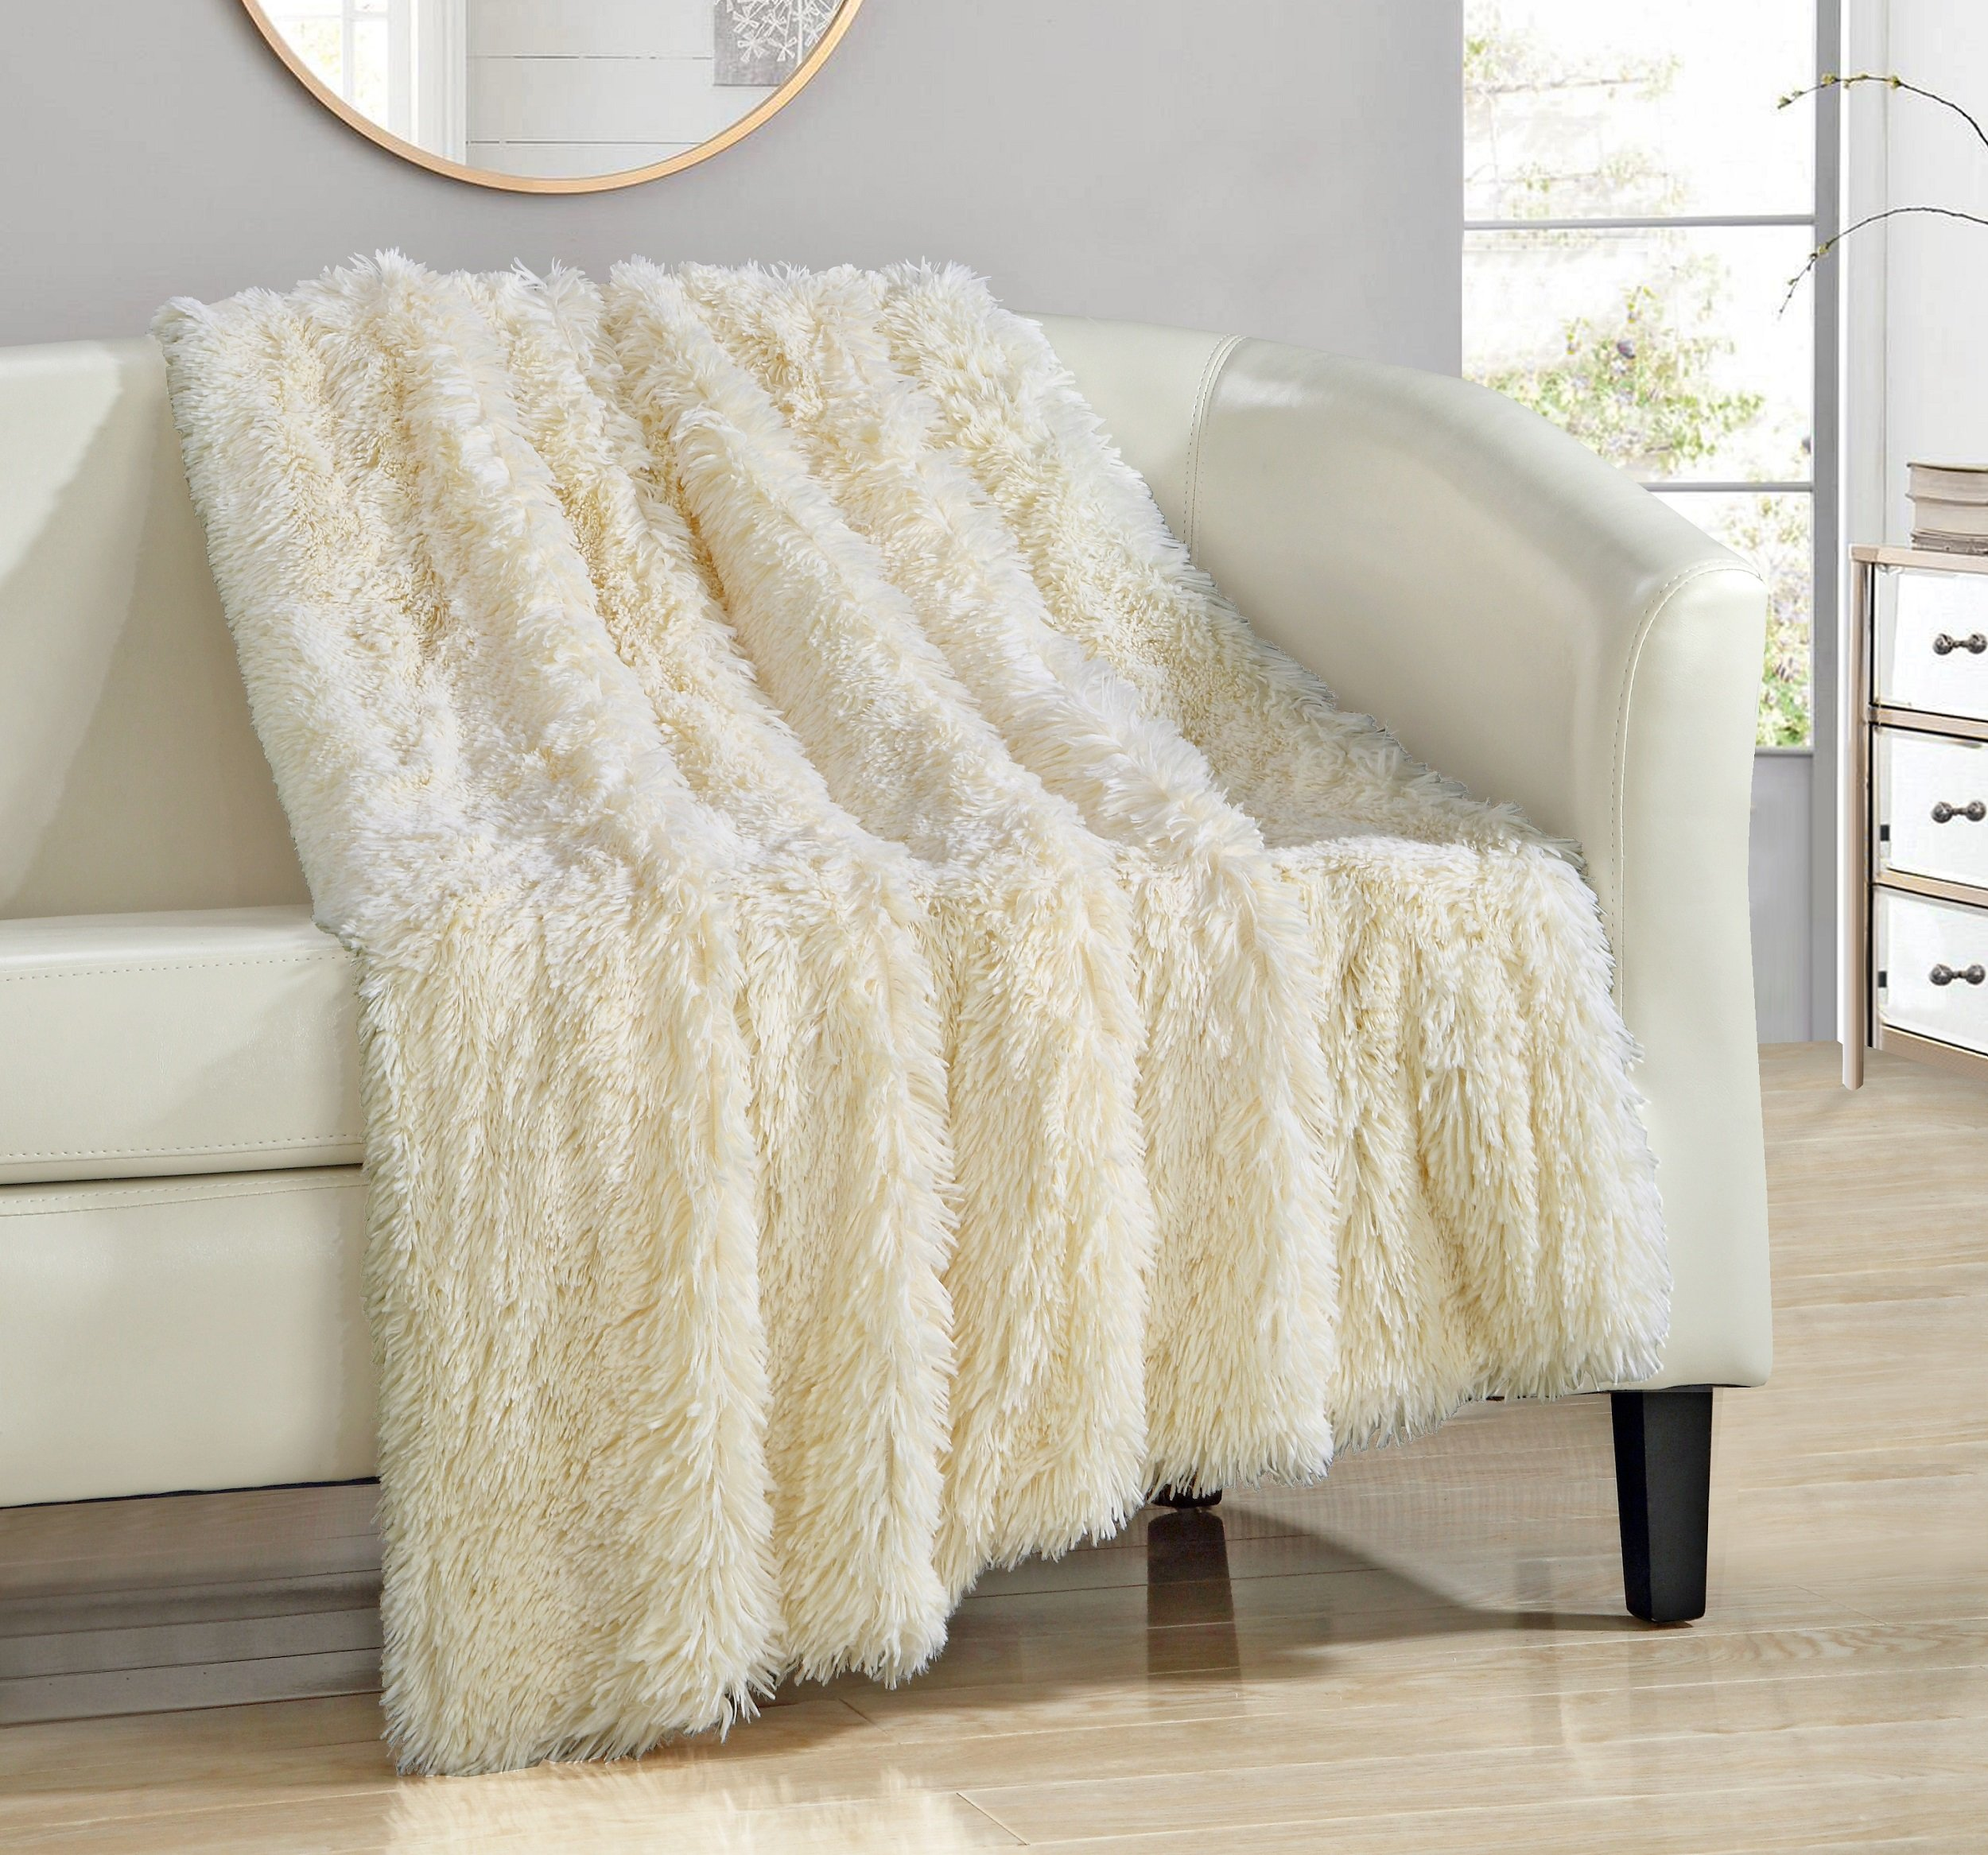 Chic Home Elana Shaggy Faux Fur Supersoft Ultra Plush Decorative Throw Blanket, 50 x 60, Beige